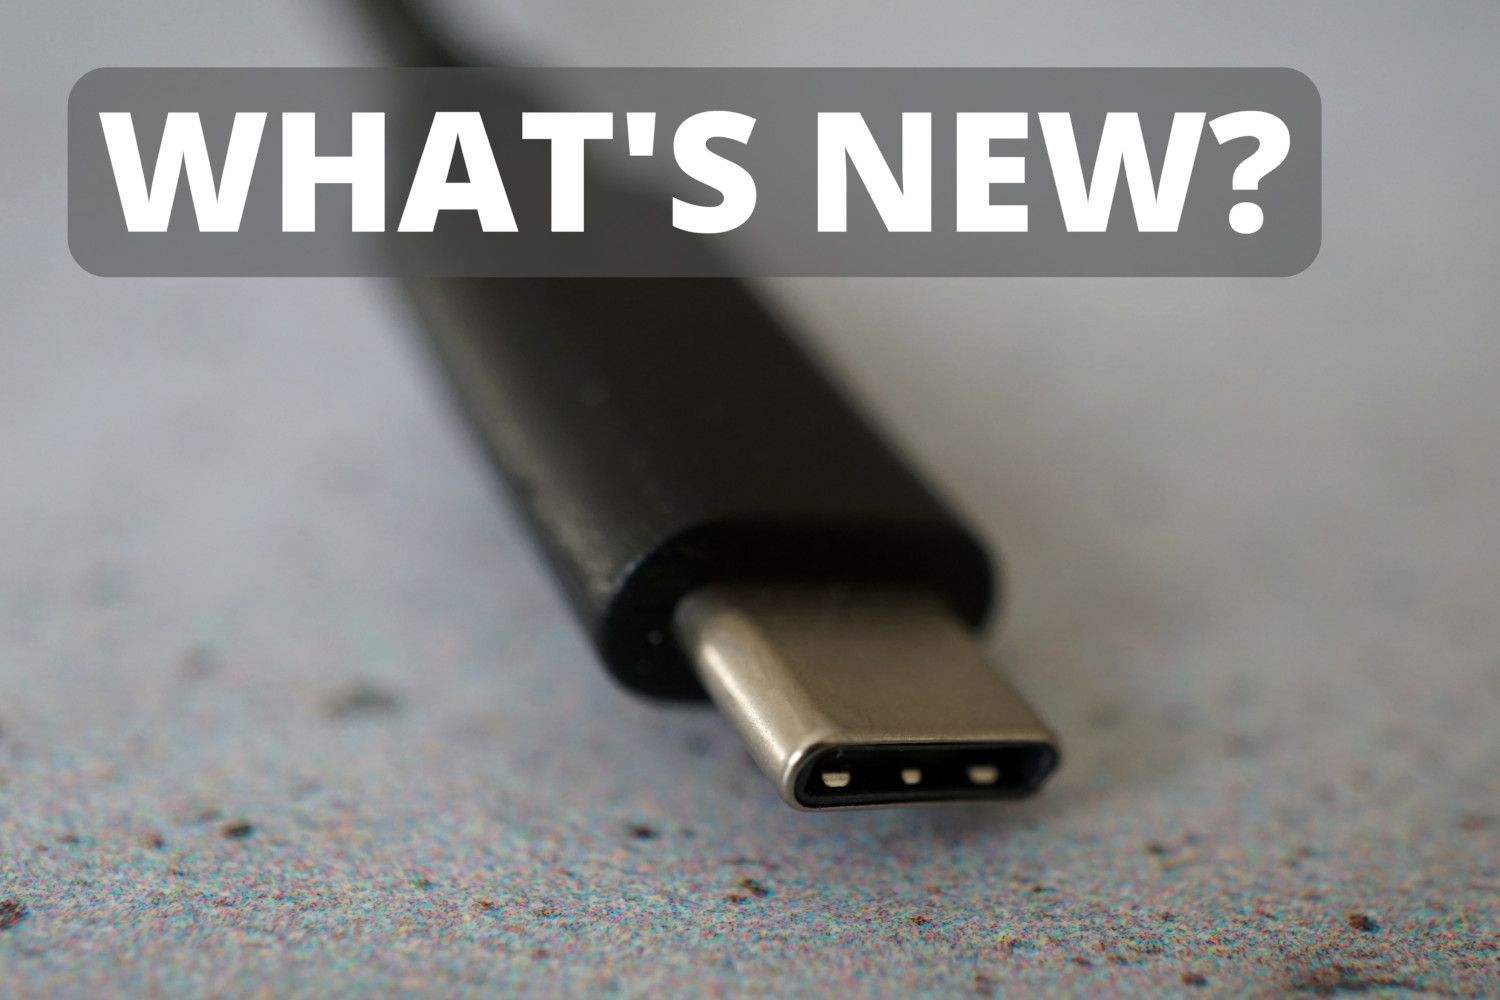 What's new? The 5G standard, a new AI and USB 4